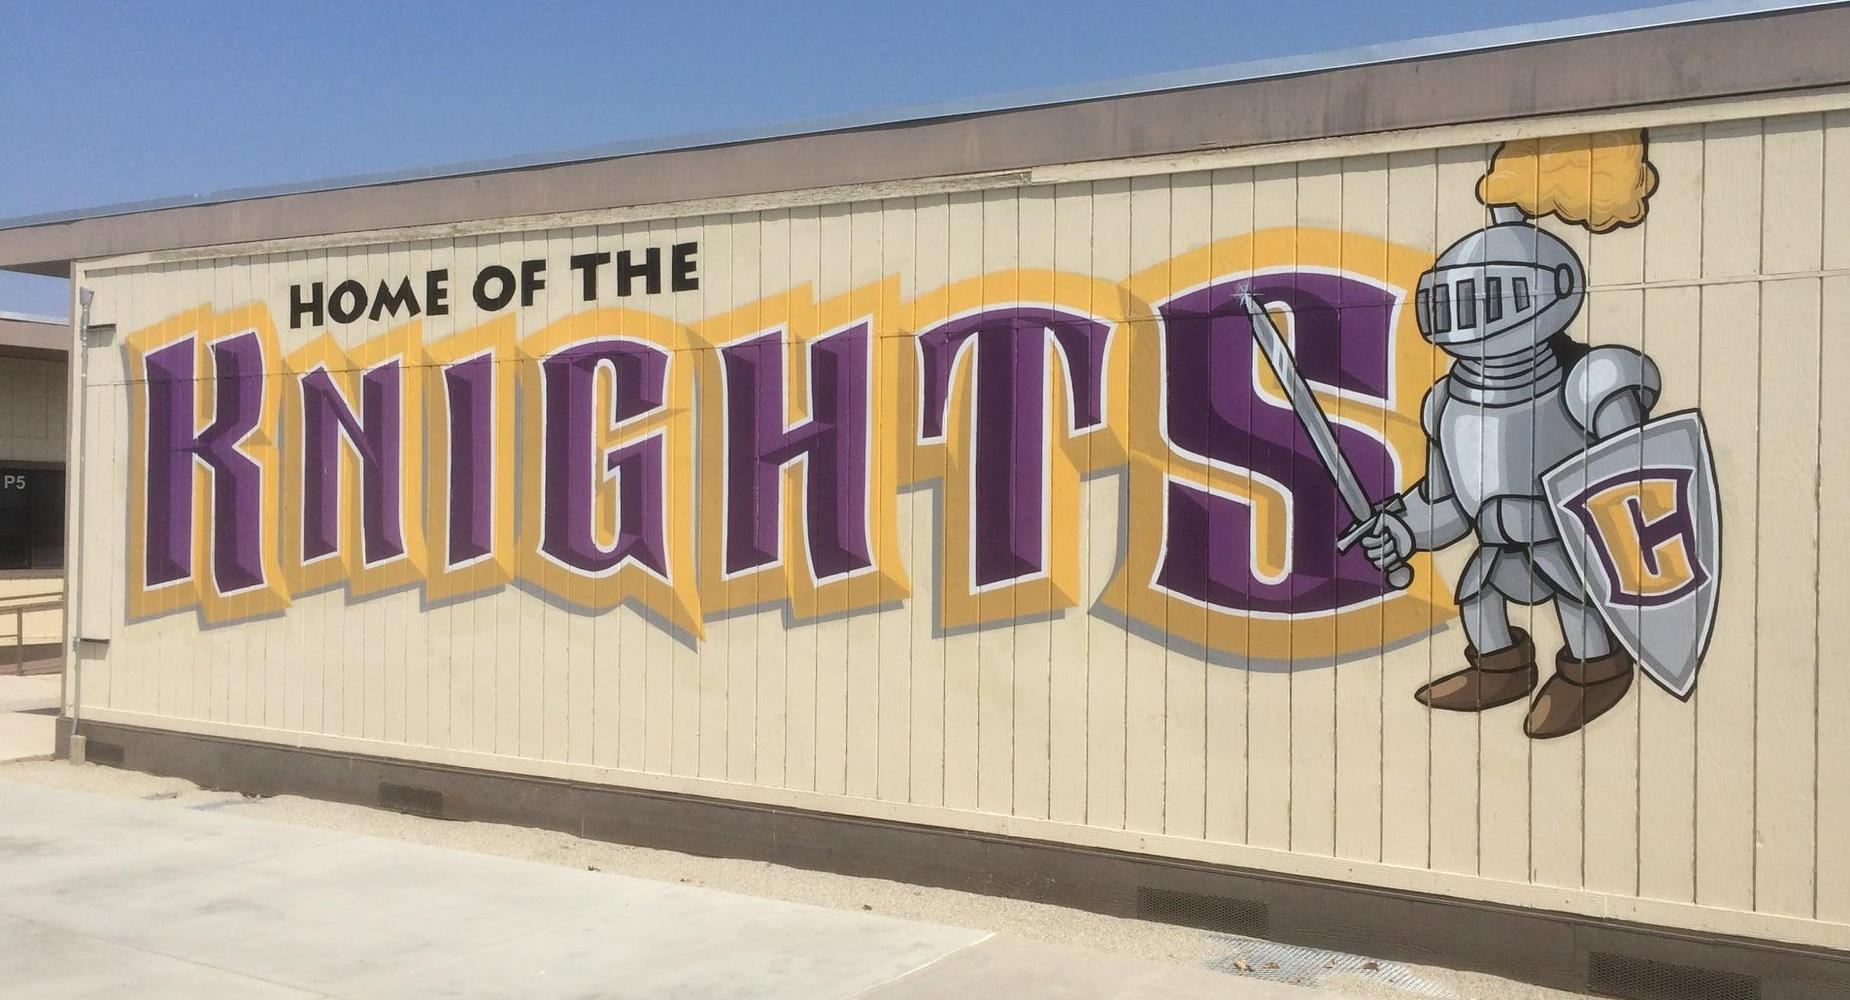 Home of the Knights!